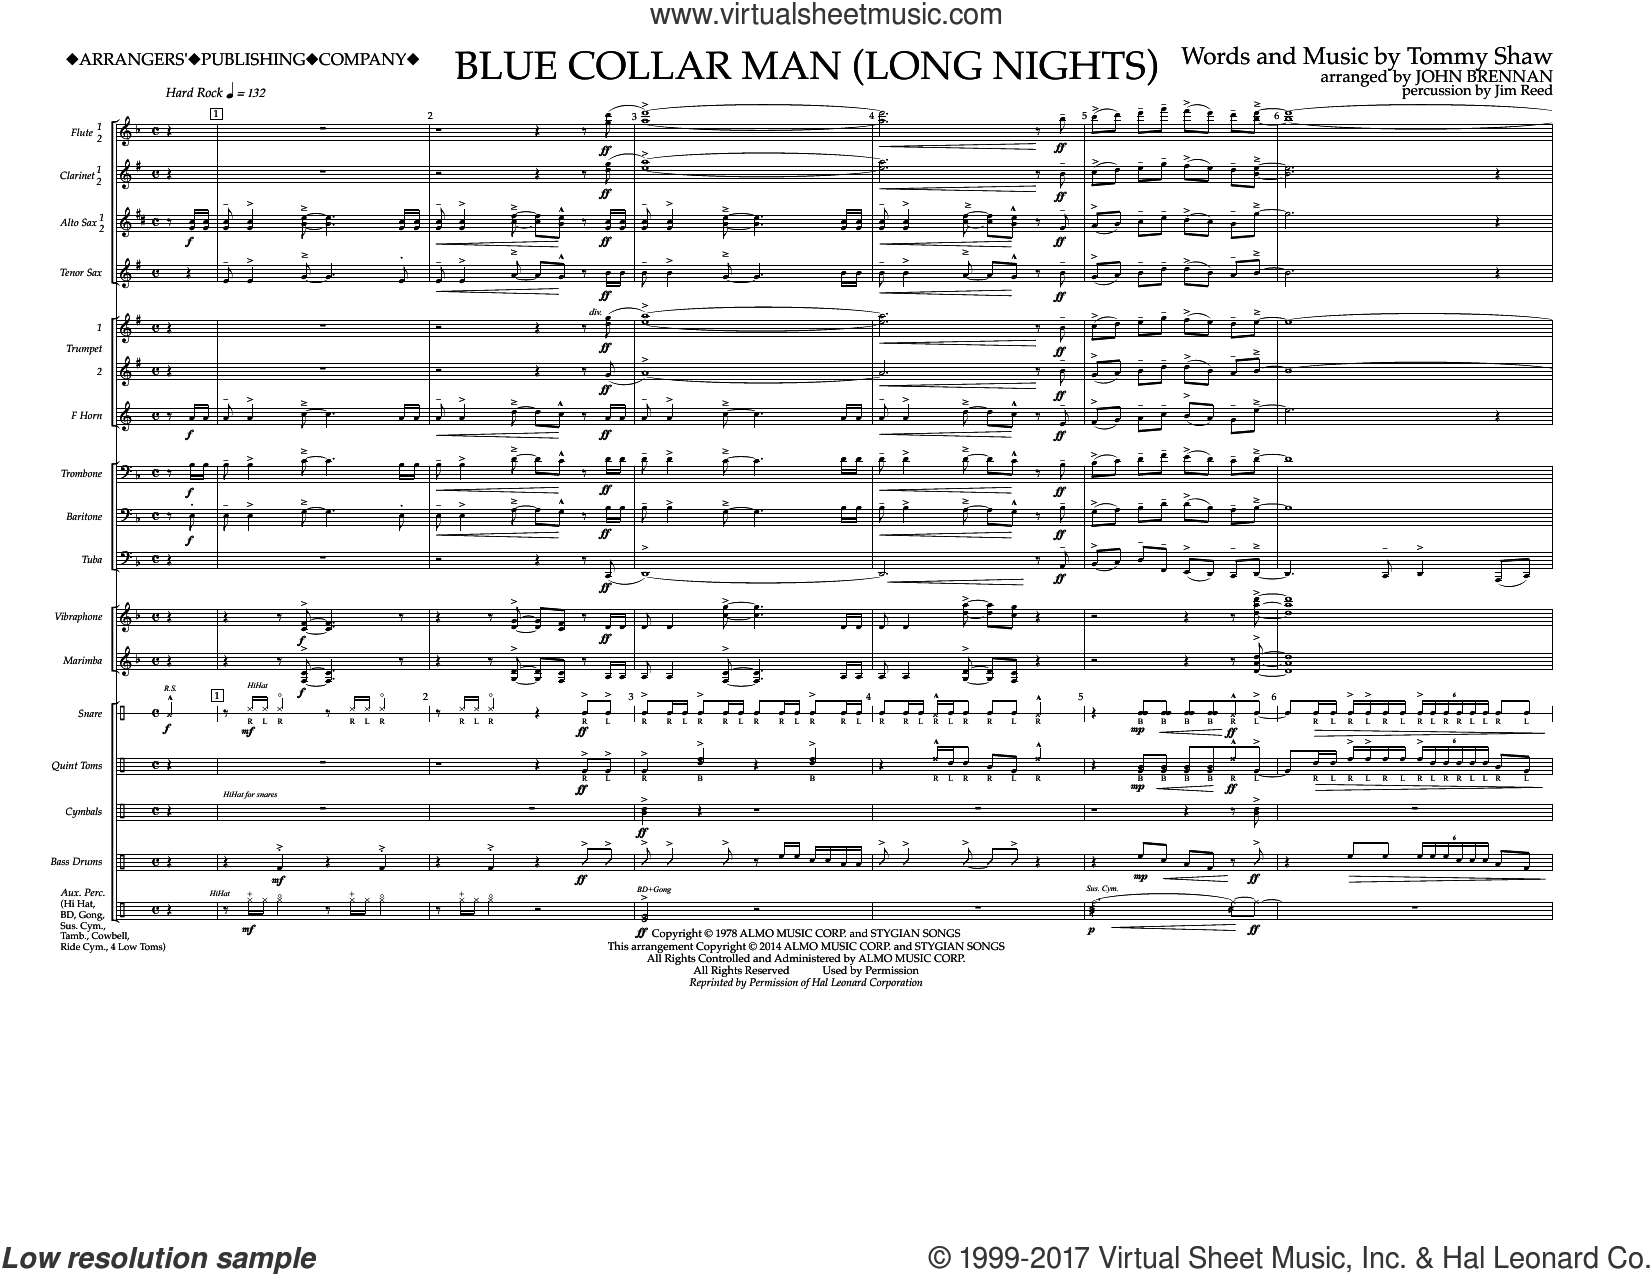 Styx - Blue Collar Man (Long Nights) sheet music (complete collection) for  marching band